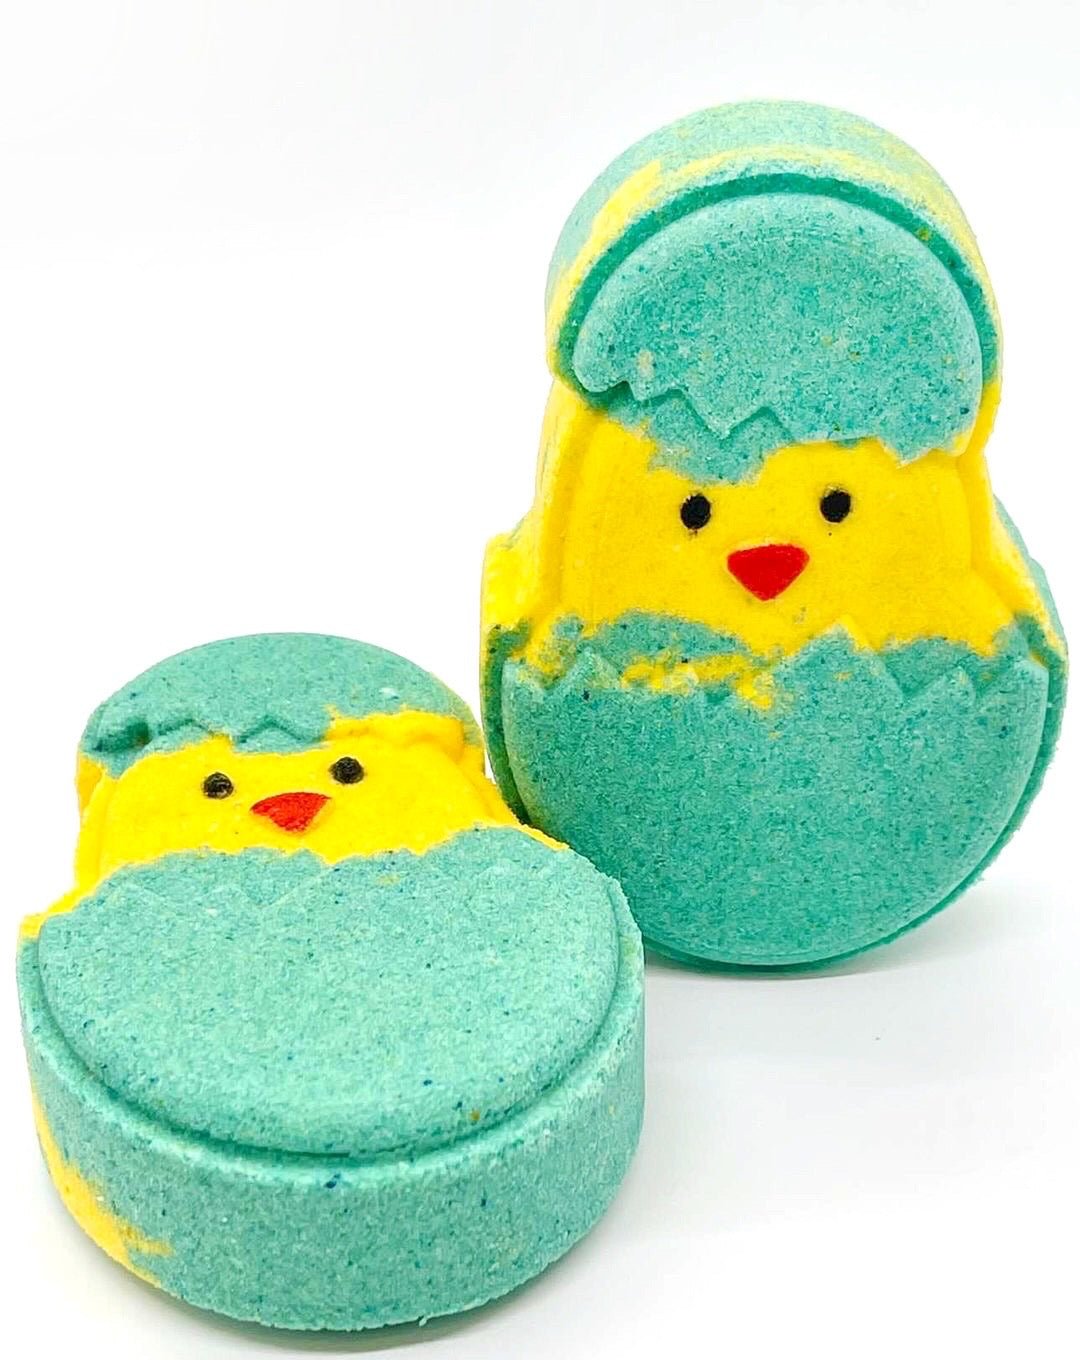 ARTISAN BATH BOMBS - LARGE FARM CHICK